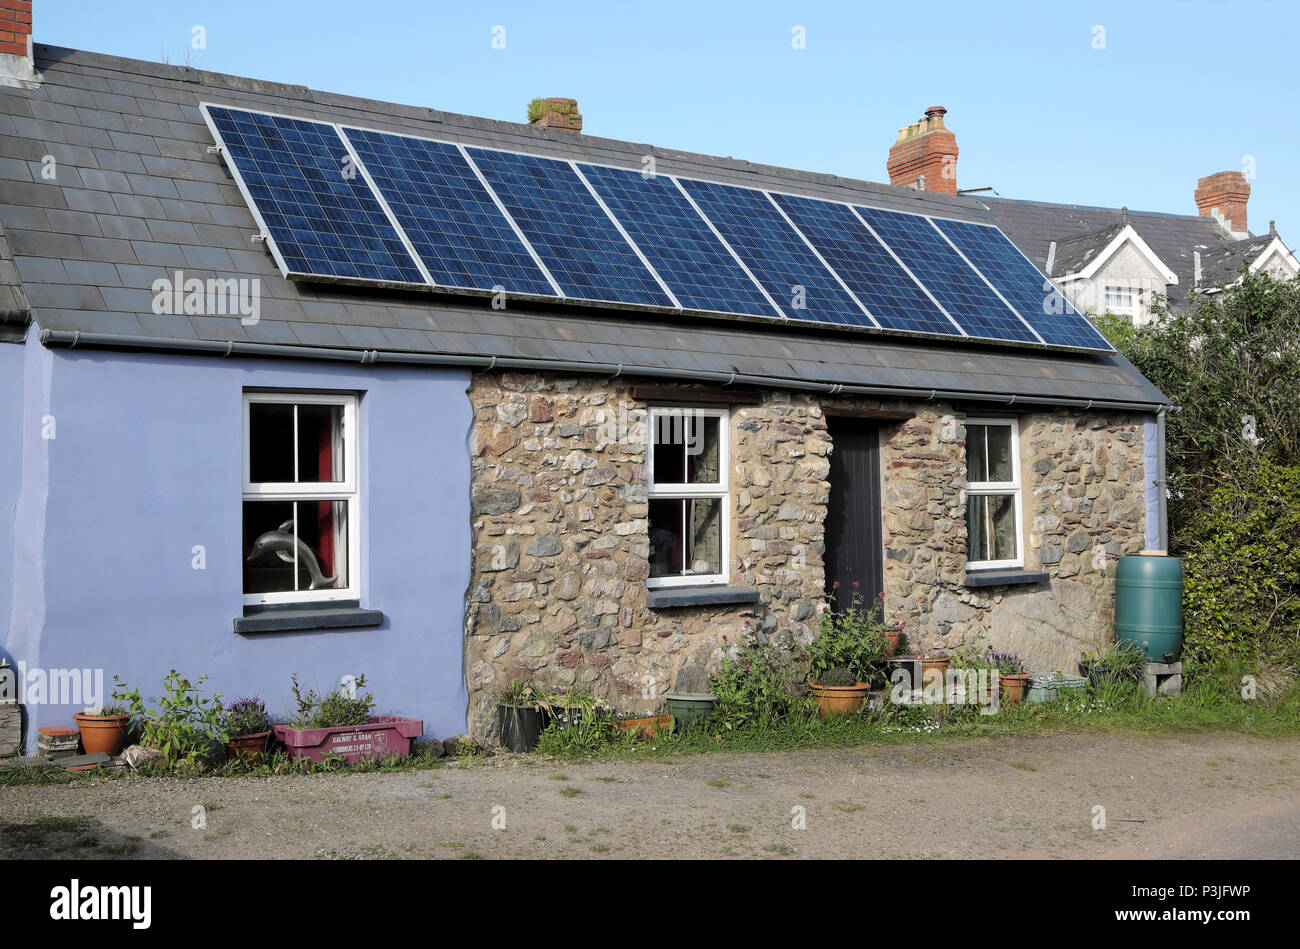 Photovoltaic cells solar panels on the roof of a small stone cottage in the village of Marloes Pembrokeshire Wales, UK  KATHY DEWITT - Stock Image